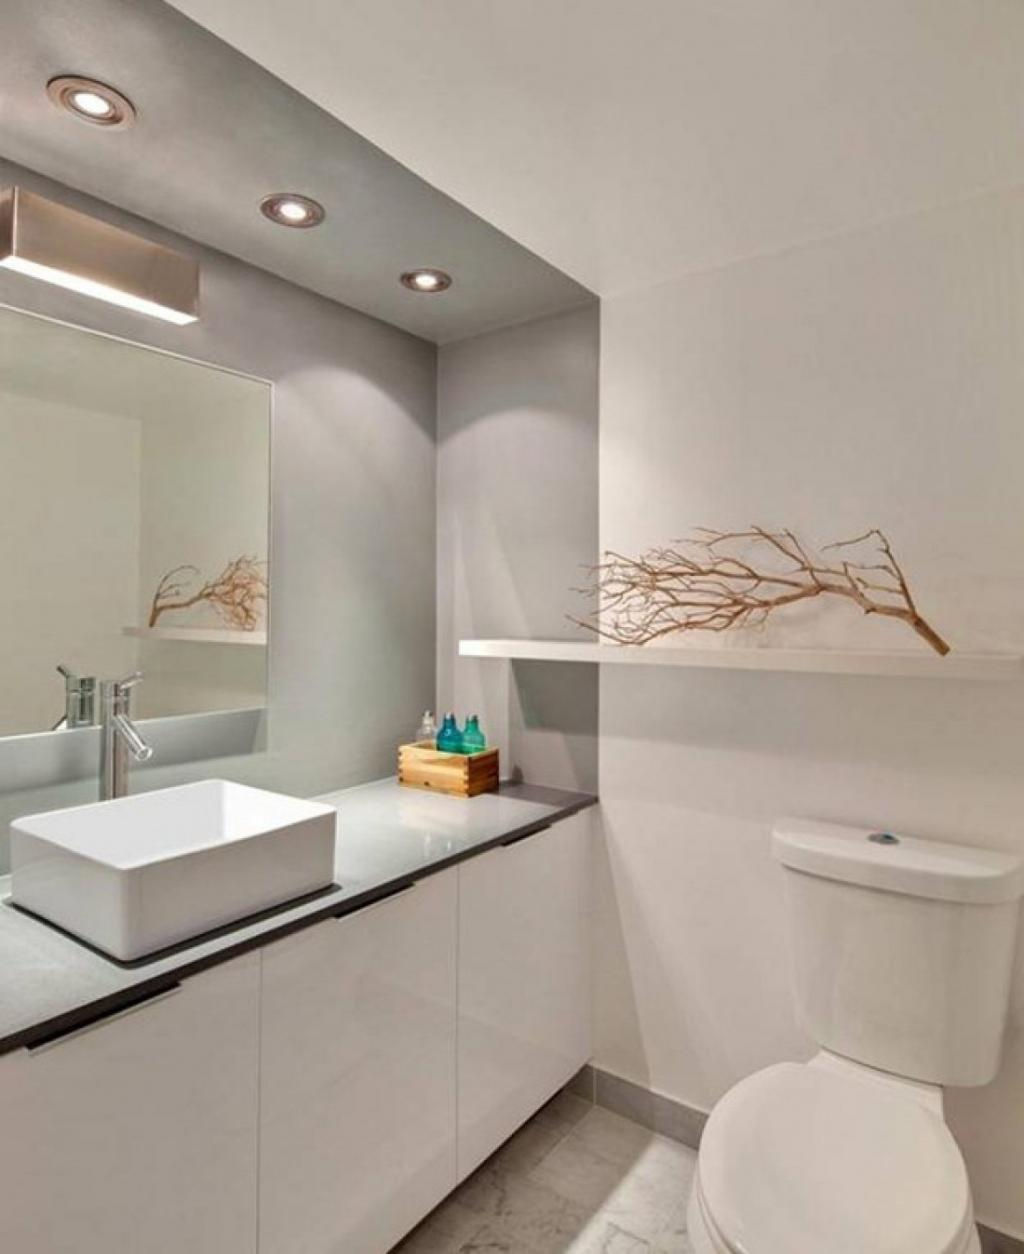 Bathroom-Styles-Design-Ideas-bathroom-designs-for-apartment-design-ideas-pictures-modern-bathroom